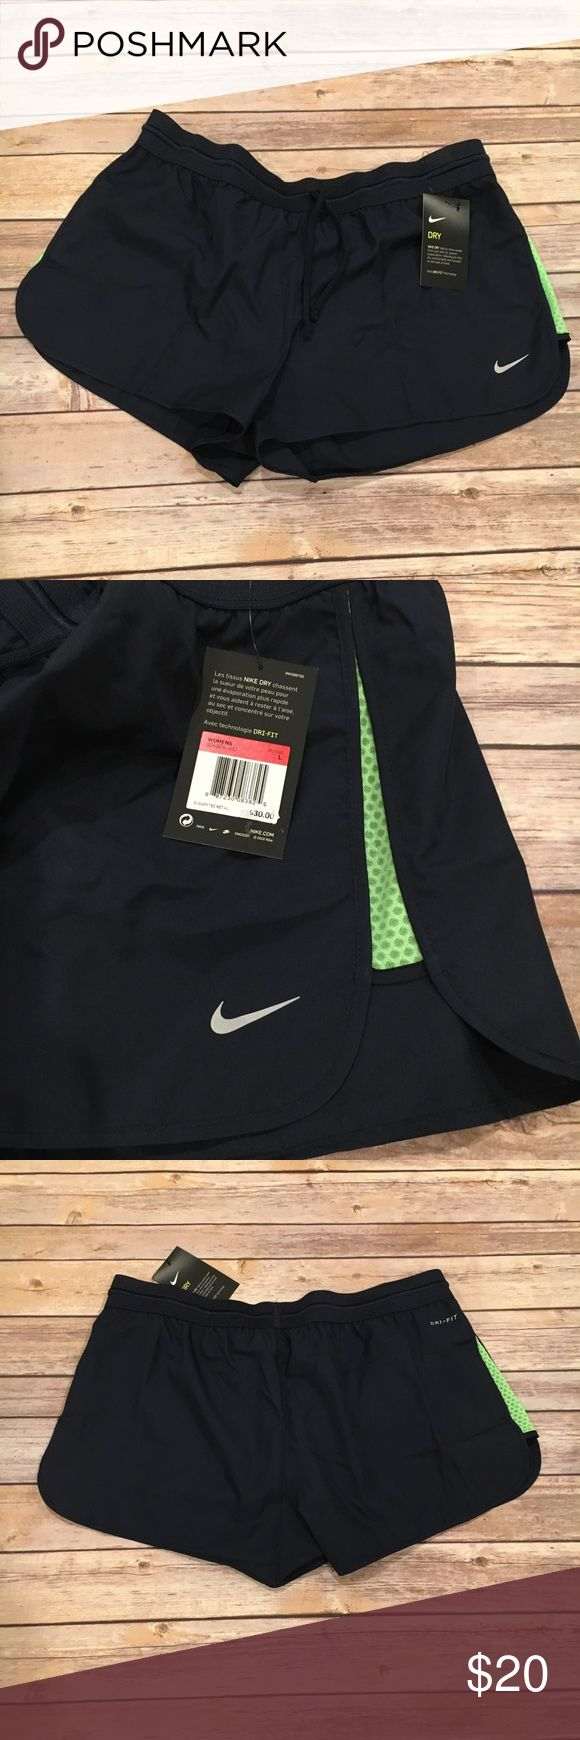 Nike Dri Fit Shorts NWT Large Nike Dri Fit Shorts NWT Large. Navy with Green sides. Offers welcome Nike Shorts